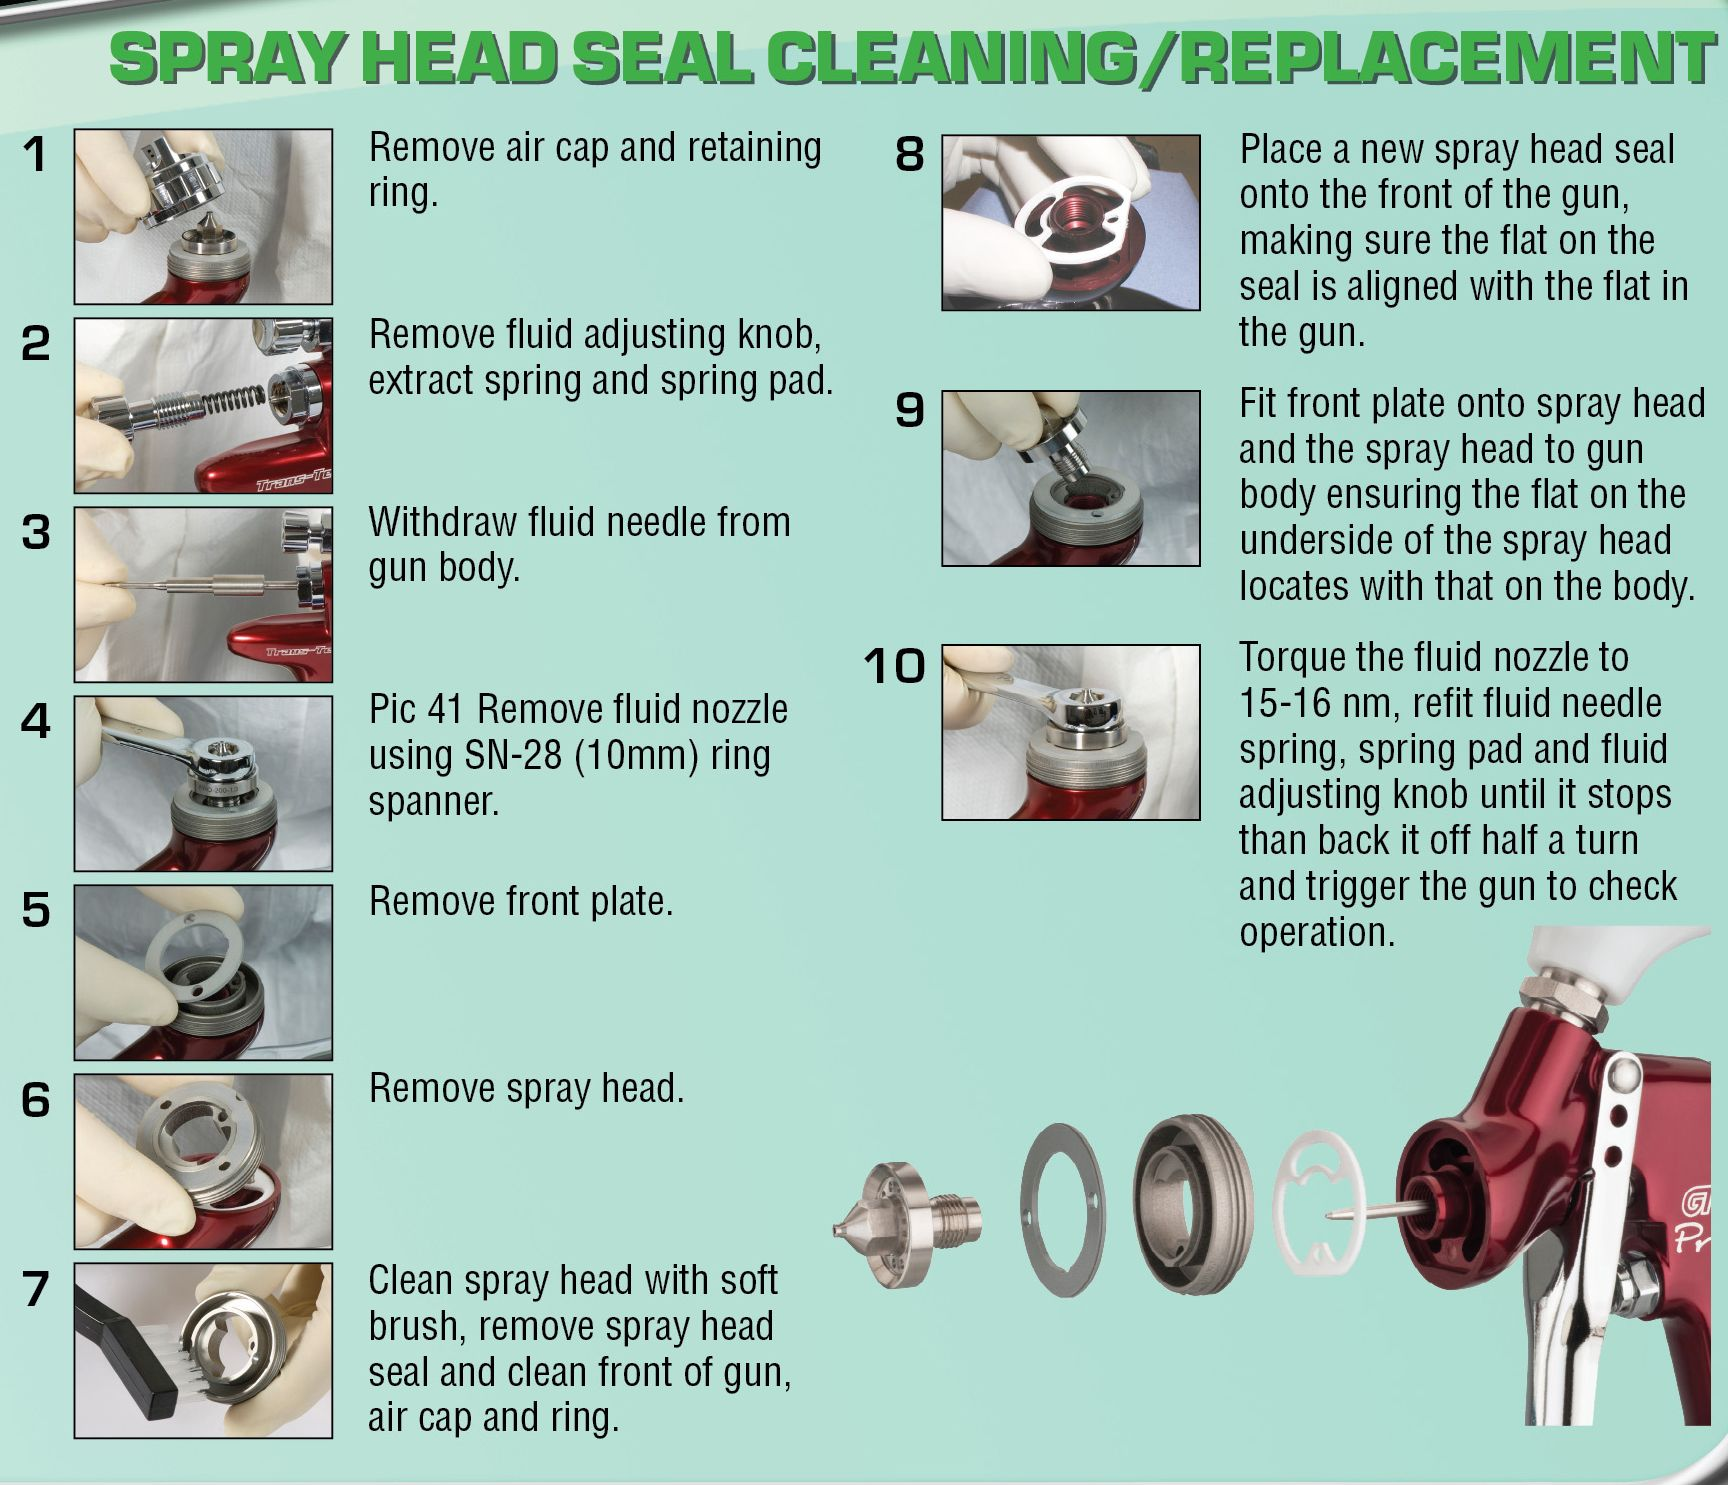 SprayHeadSealCleaningReplacement